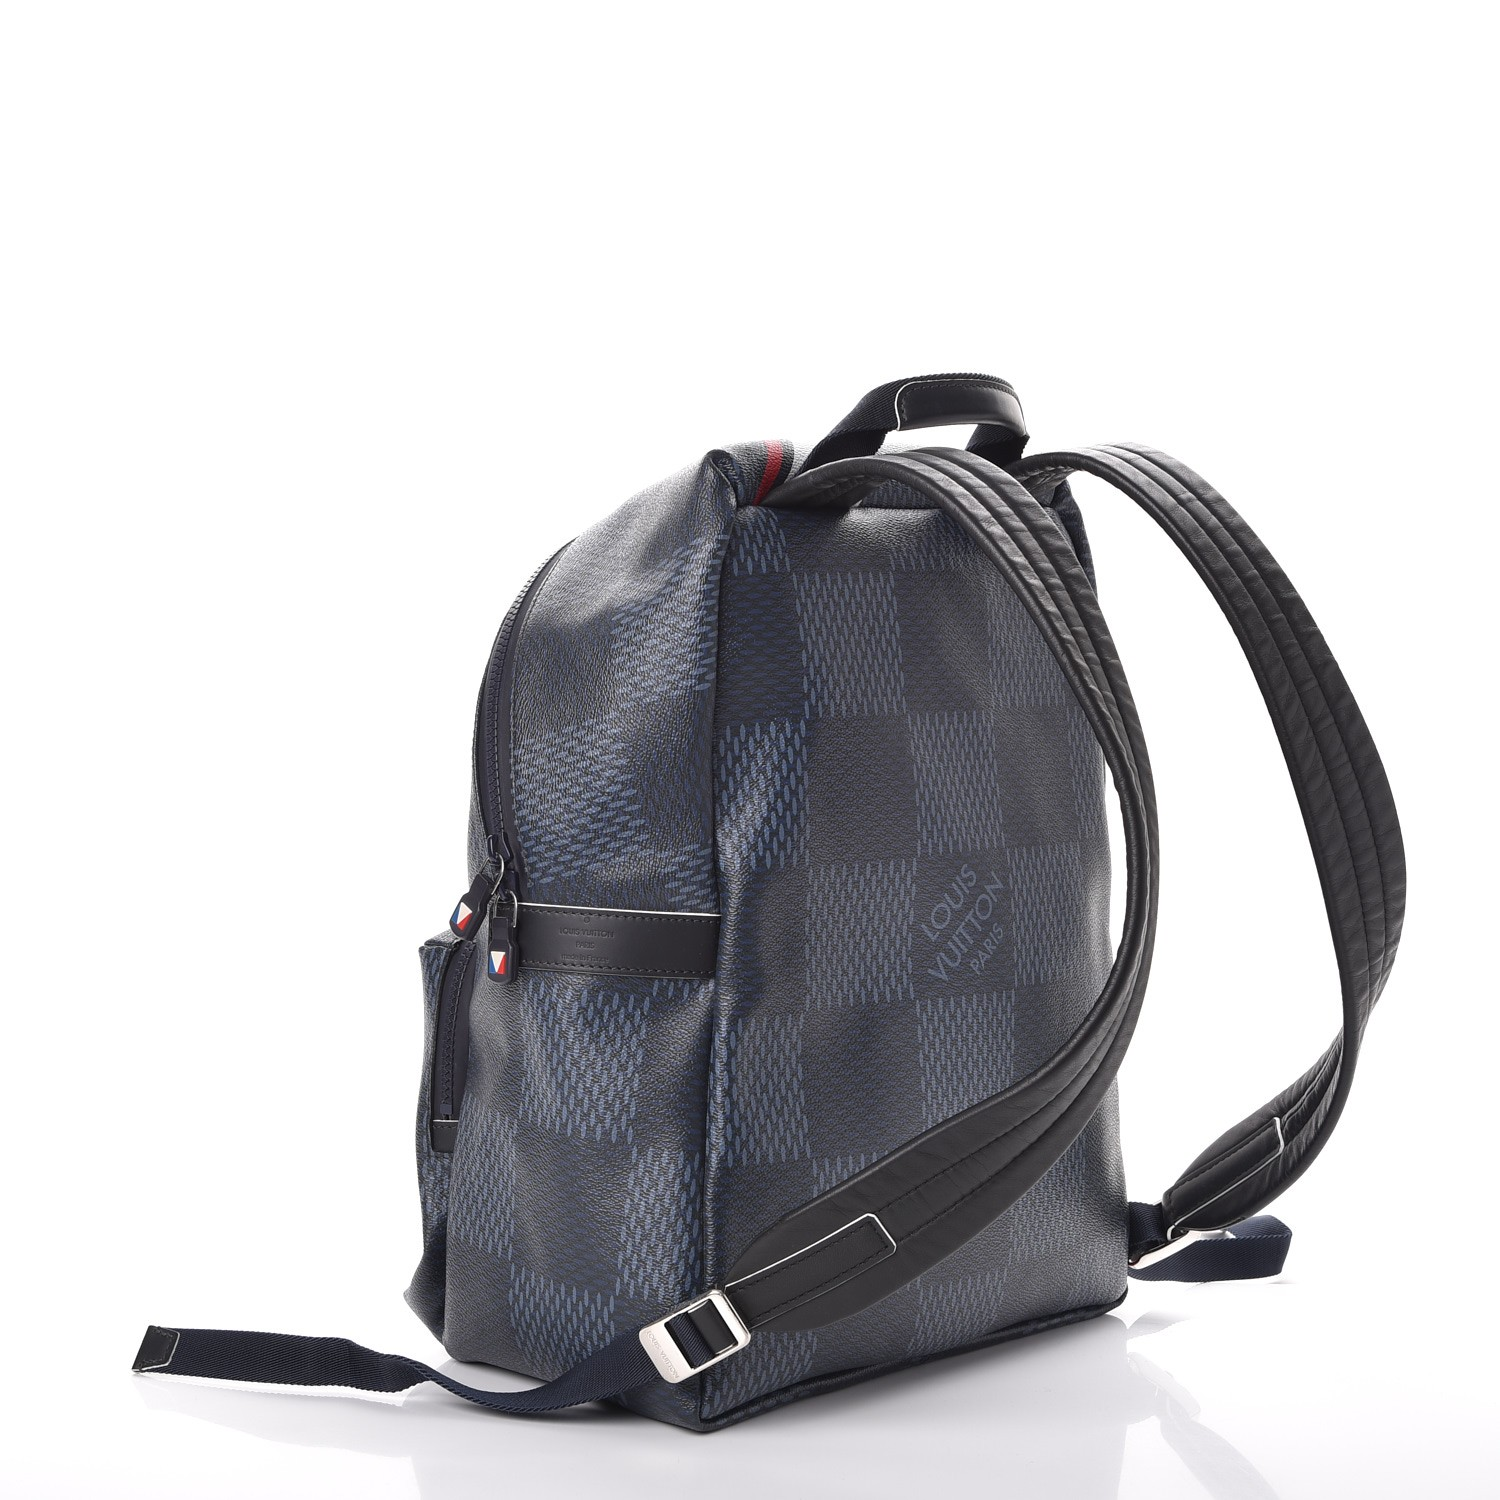 33f9dca07c77 LOUIS VUITTON Latitude Damier Cobalt Americas Cup Apollo Backpack. Empty.  Pinch Zoom